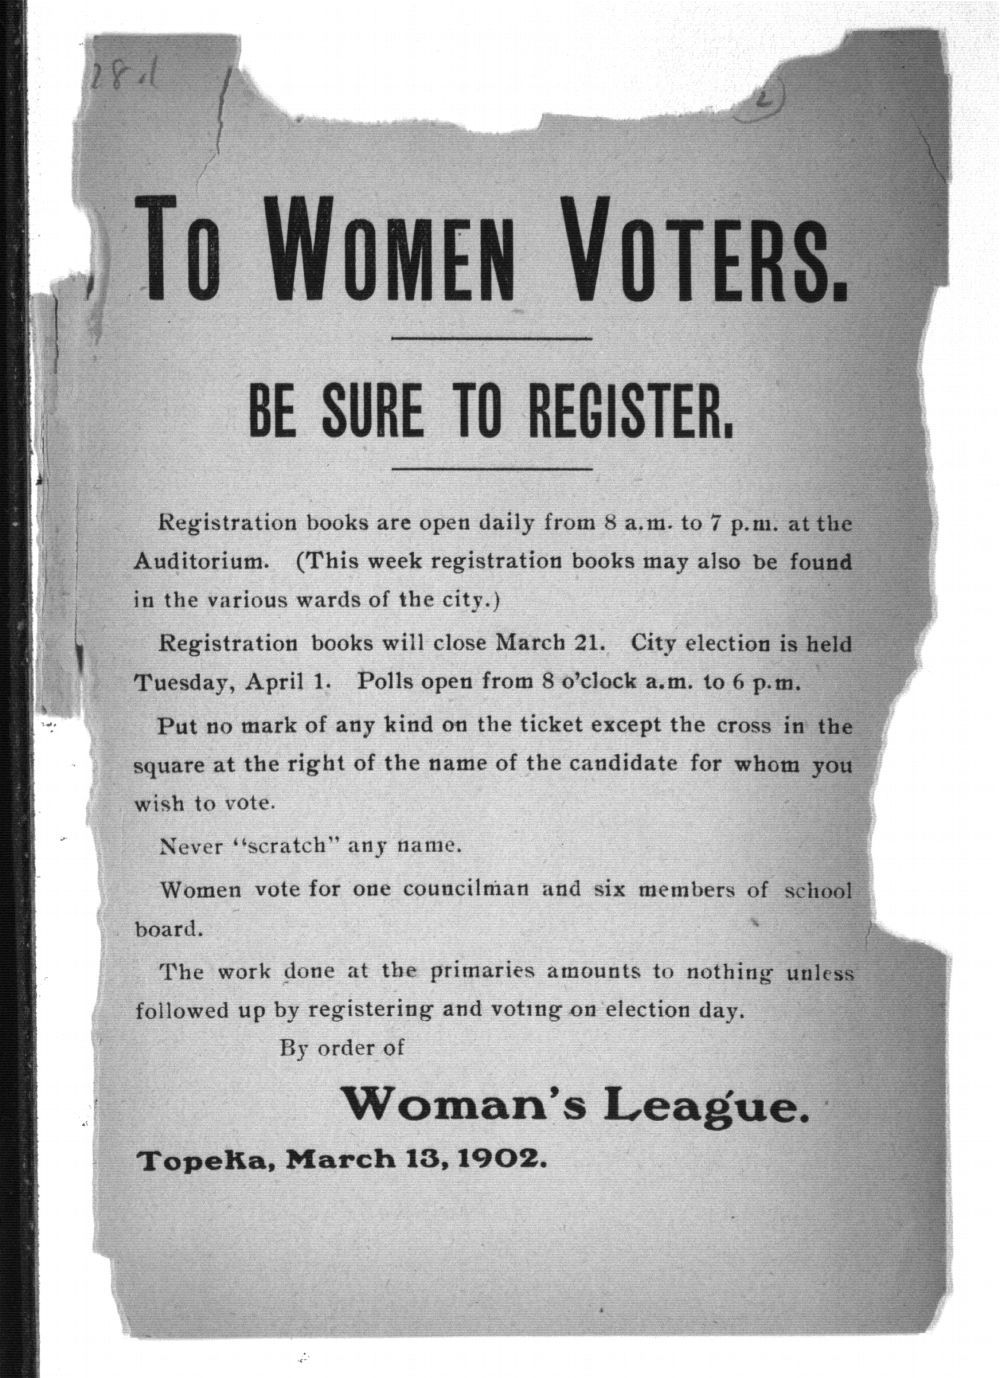 To women voters, be sure to register